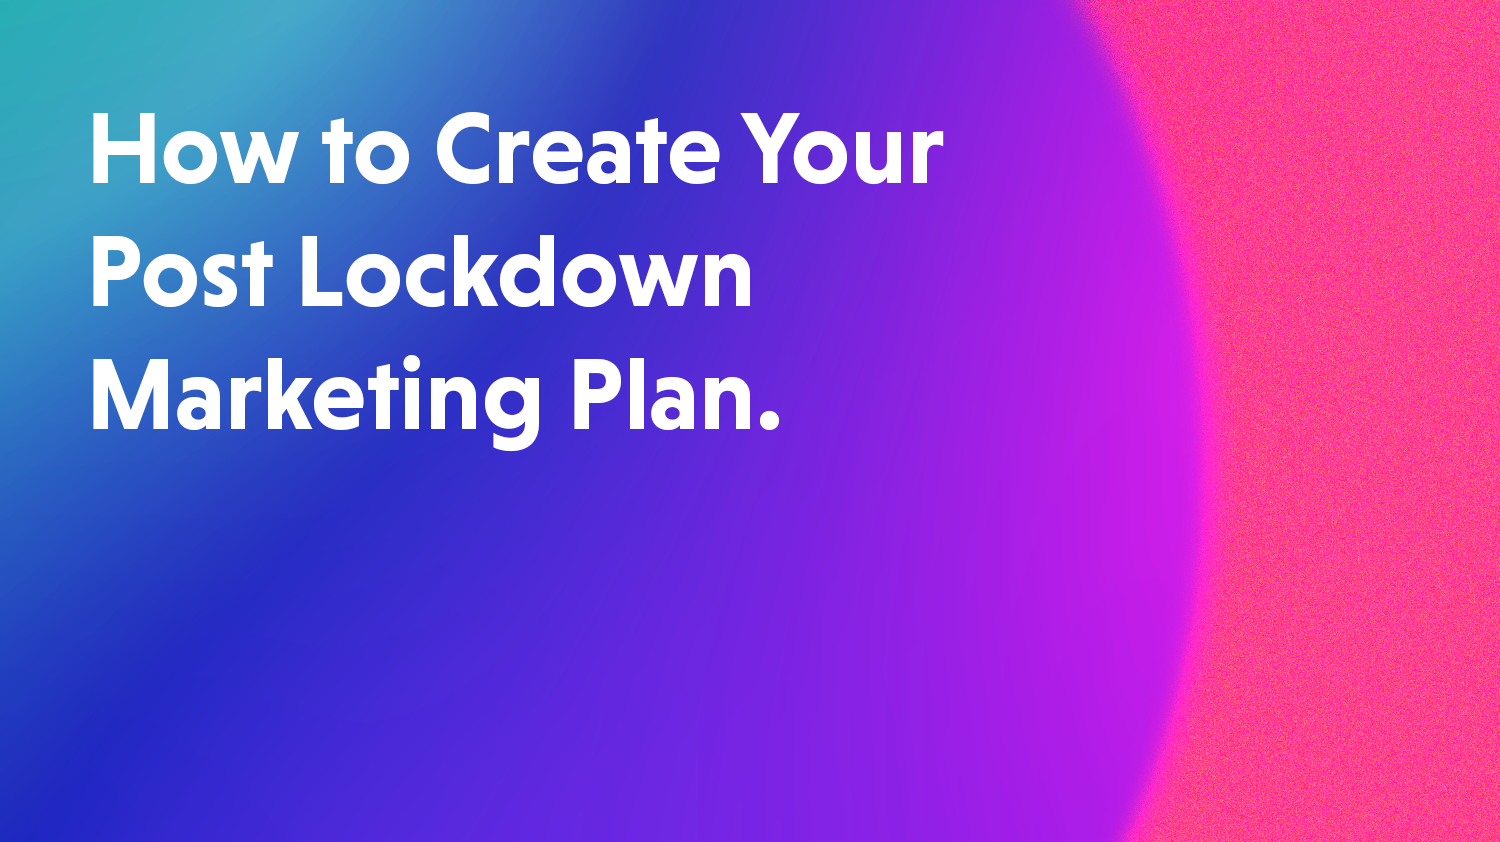 How To Create A Post Lockdown Marketing Plan